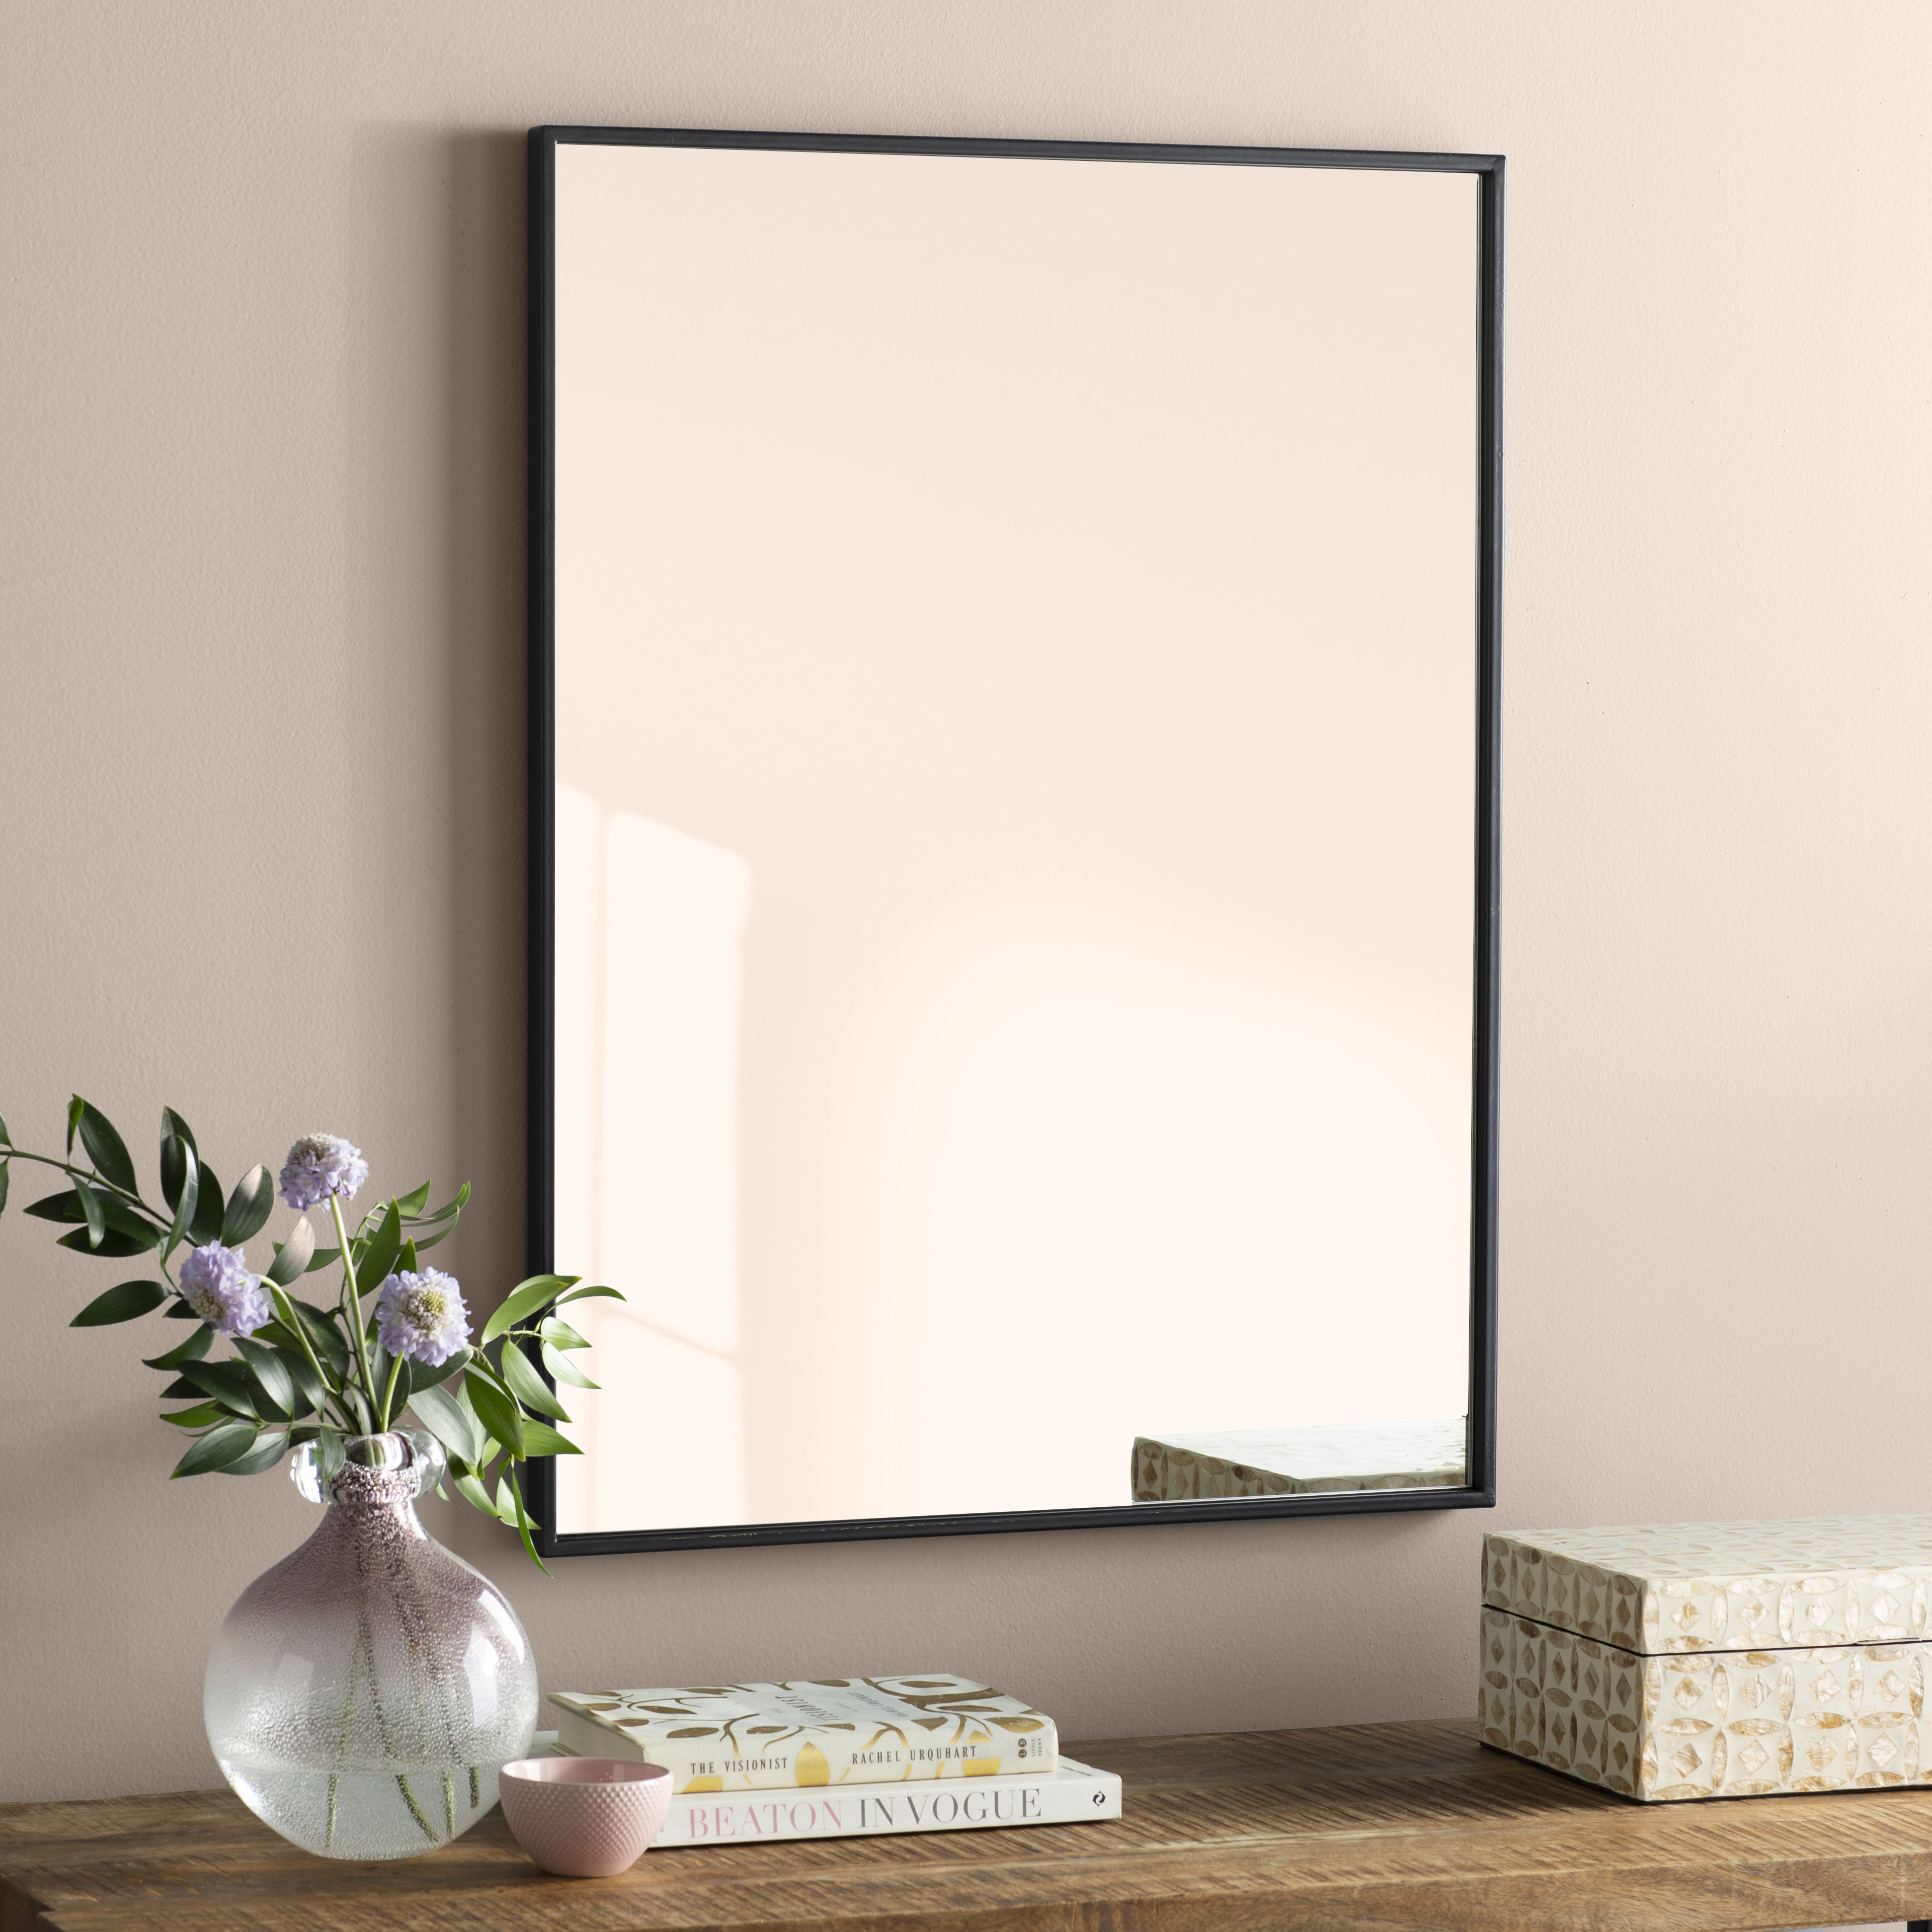 Square Wall & Accent Mirrors | Joss & Main With Regard To 2 Piece Priscilla Square Traditional Beveled Distressed Accent Mirror Sets (Image 17 of 20)